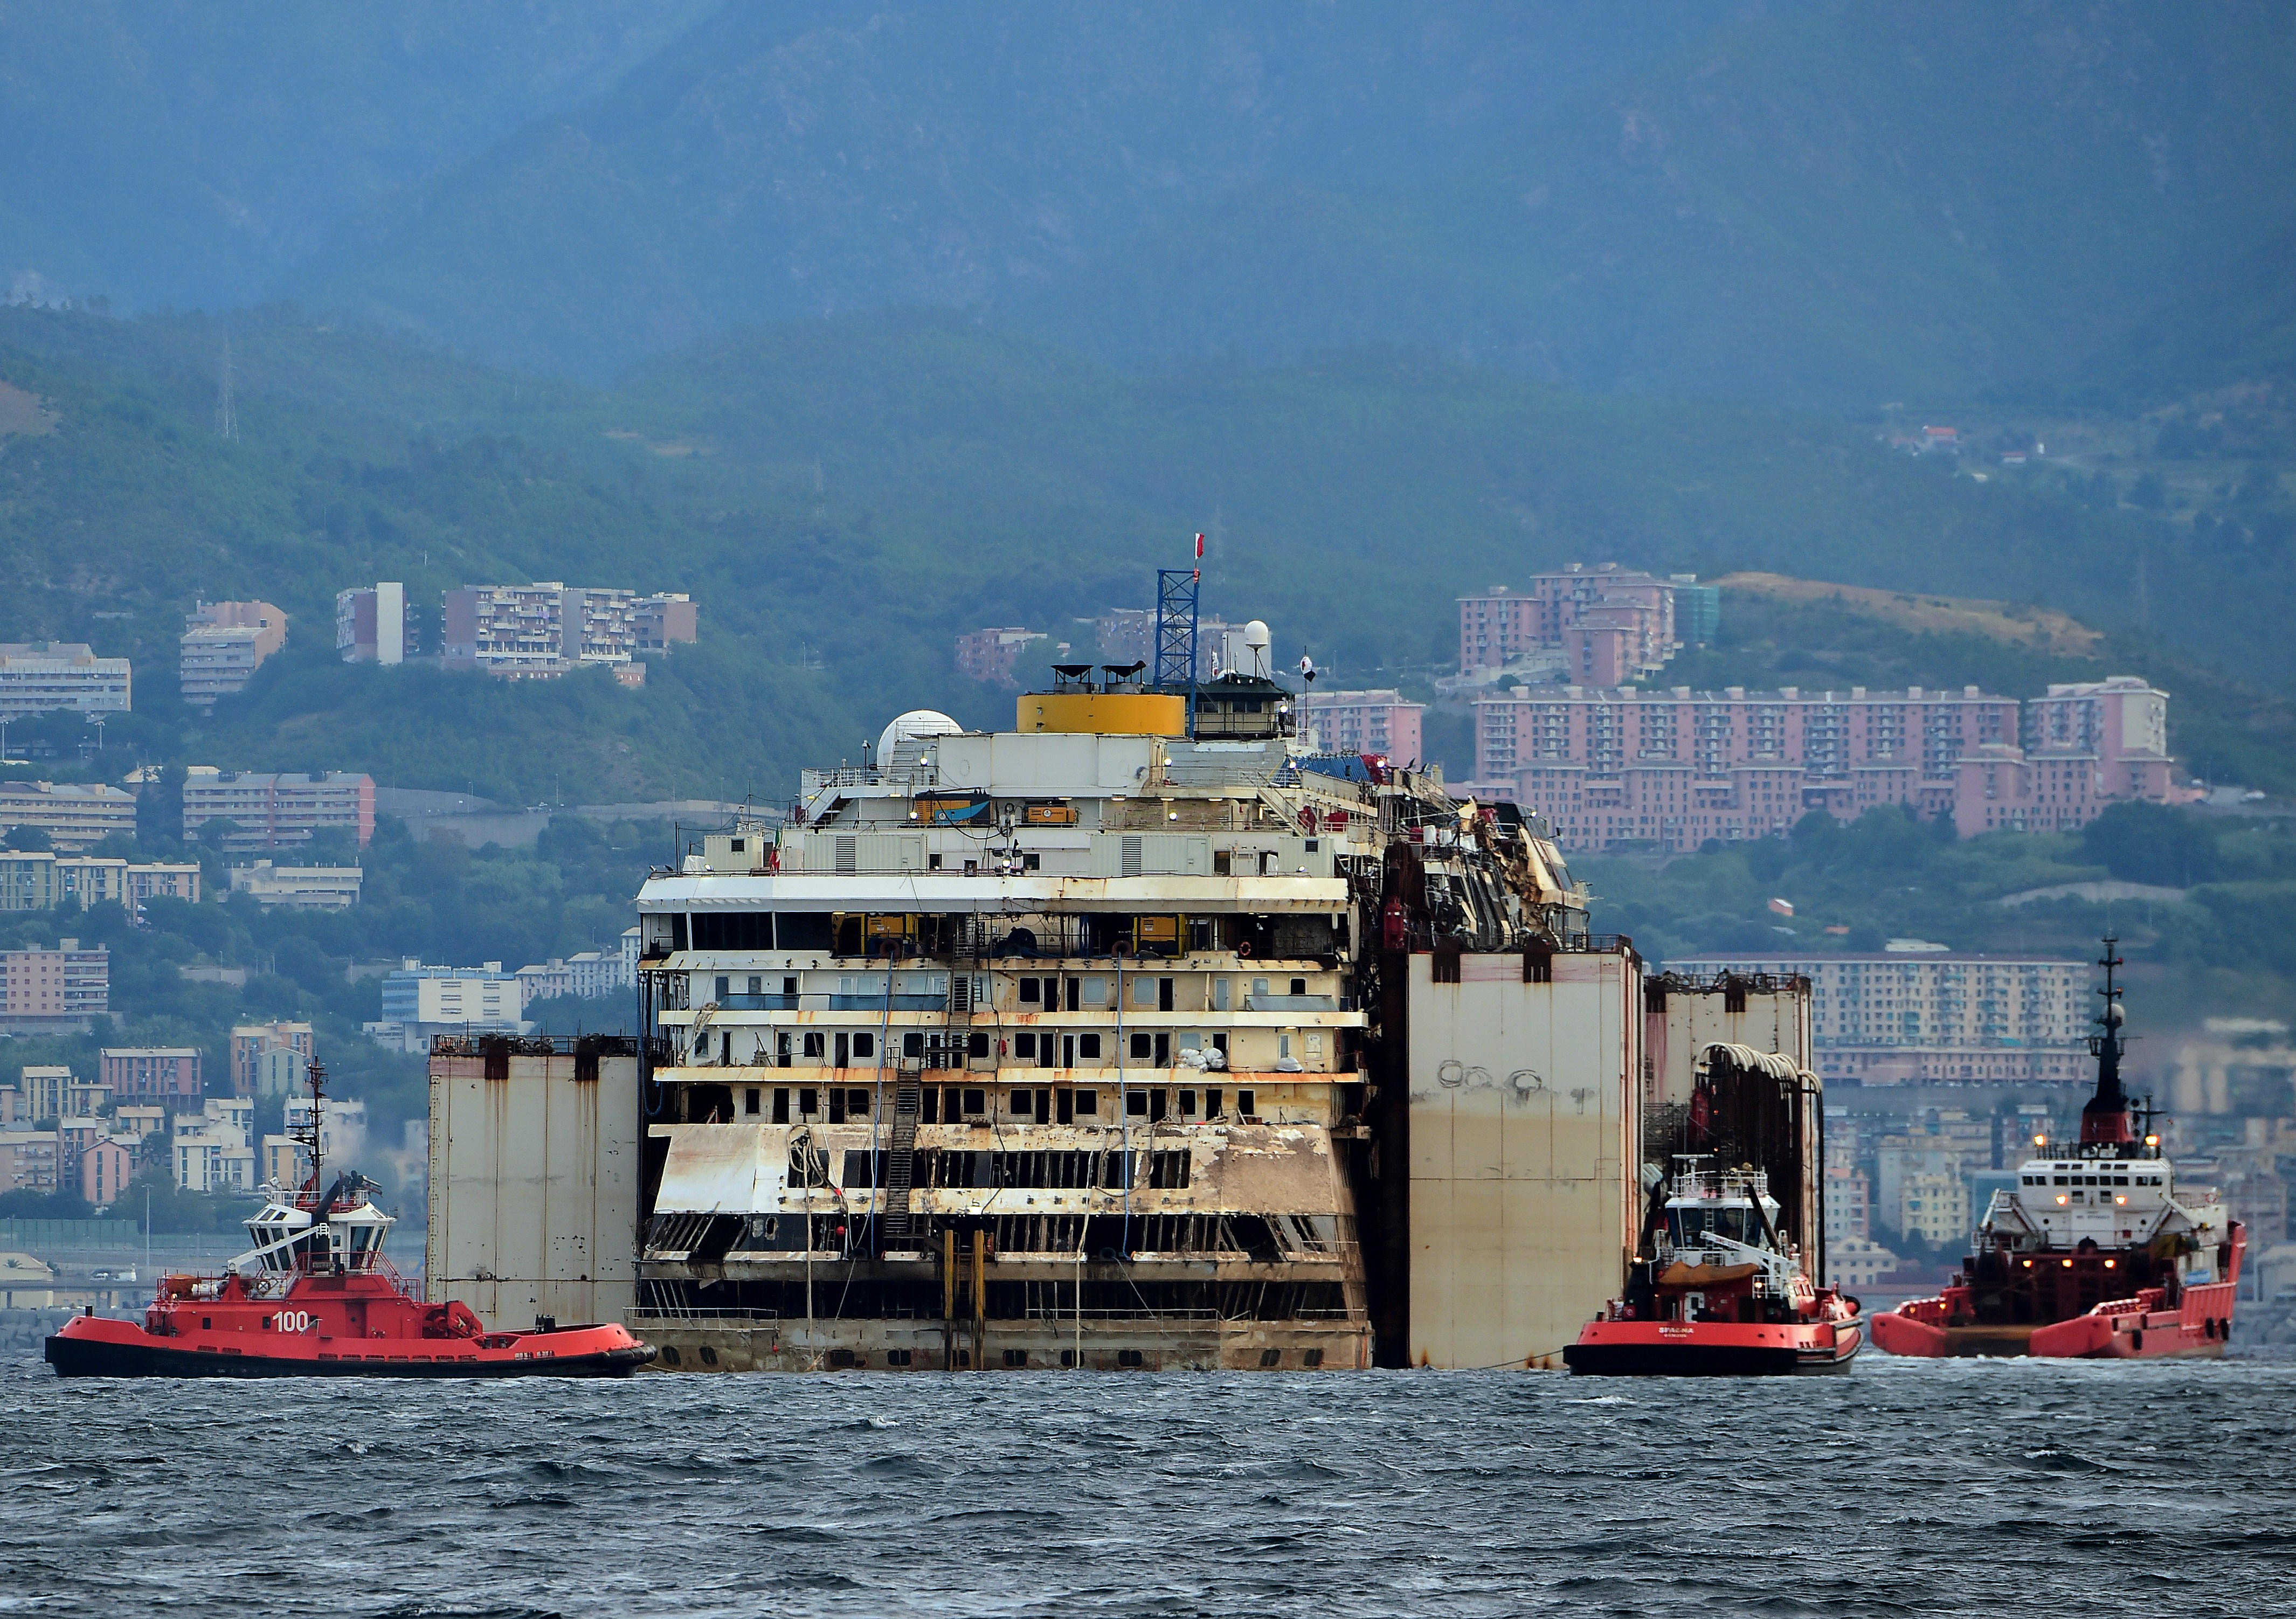 The refloated wreck of the Costa Concordia cruise ship is being dragged to the harbor of Pra di Voltri near Genoa early on July 27, 2014.